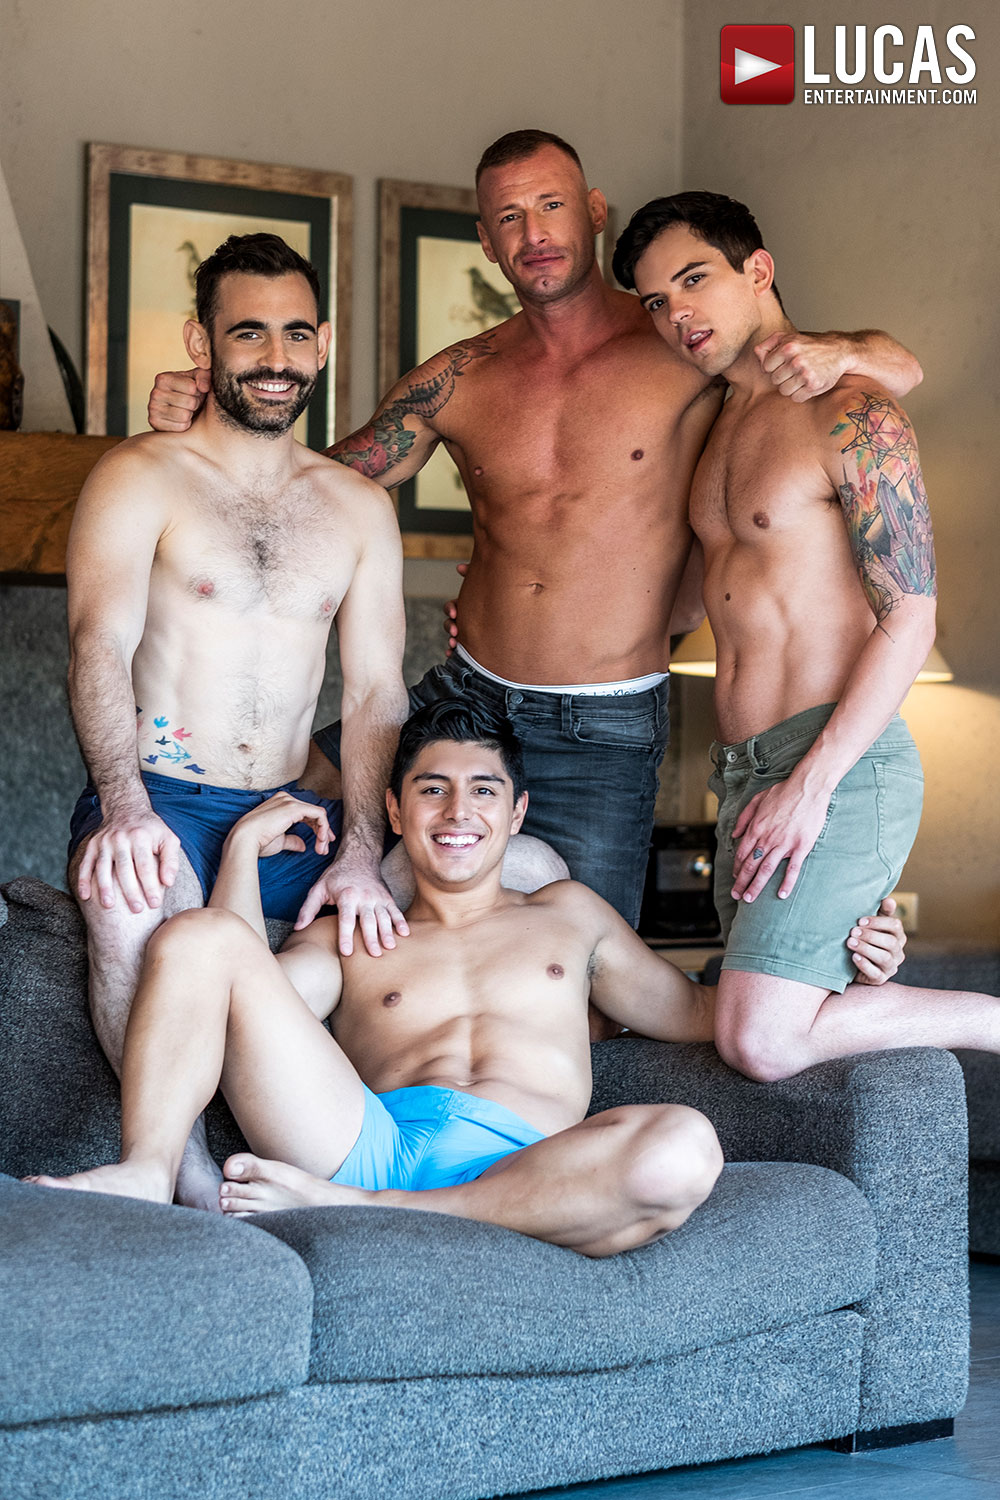 Logan And Max Breed Dakota And Ken - Gay Movies - Lucas Entertainment